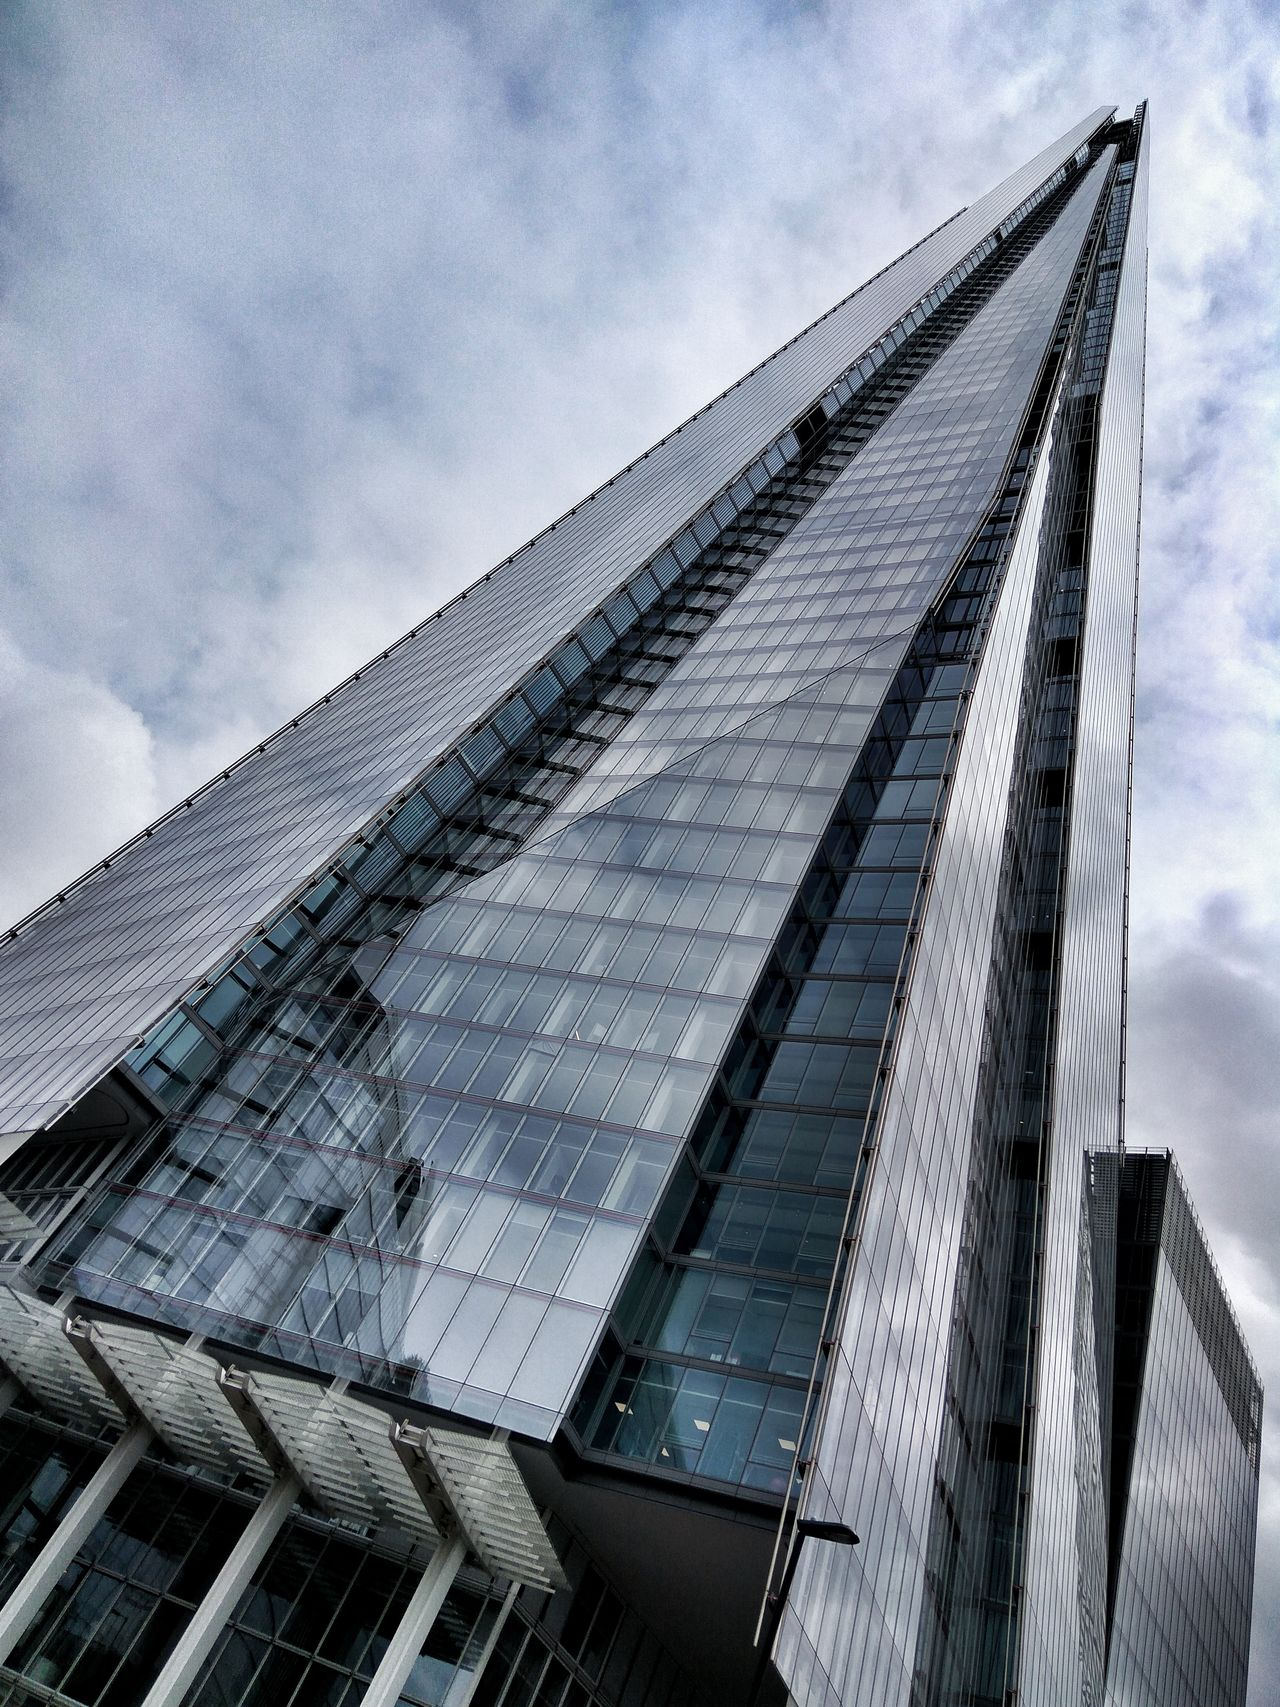 The Shard Sky Low Angle View Architecture Cloud - Sky Built Structure Day No People Outdoors Building Exterior Close-up London Renzo Piano The Shard Cloudy Metal And Glass Modernity Style Class Design Magazine Details Urban Exploration Cold Colors Geometry Waypoint